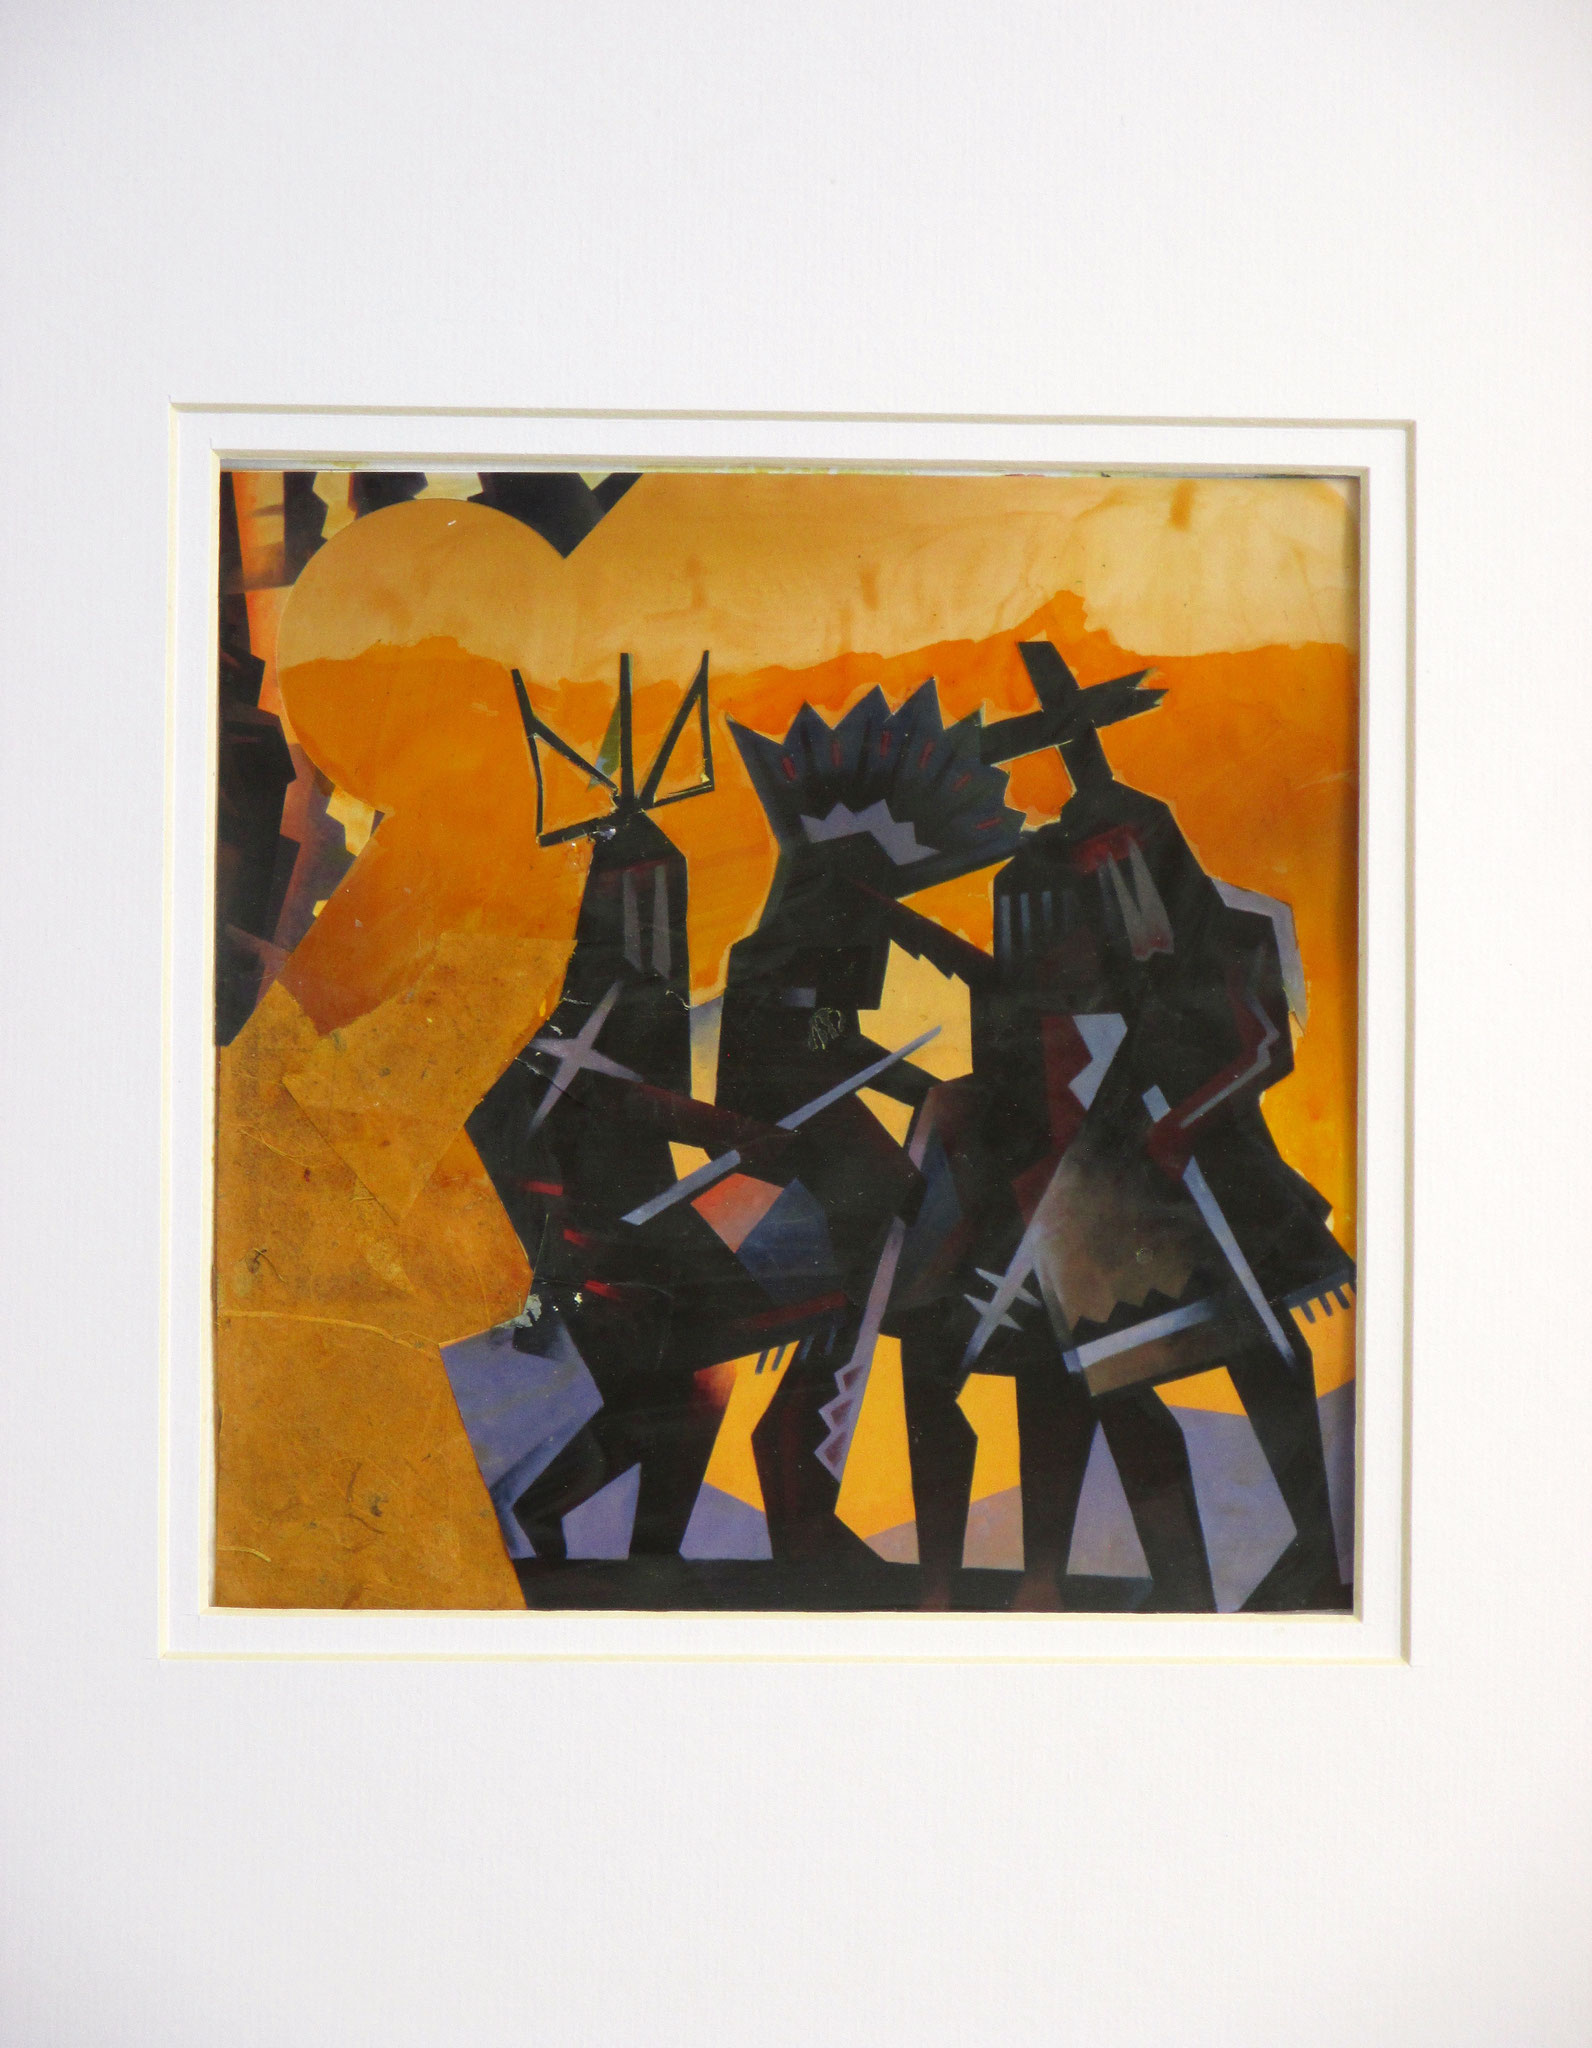 Native Dancers, collage on paper, 11 x 14, matted, 2016, SOLD